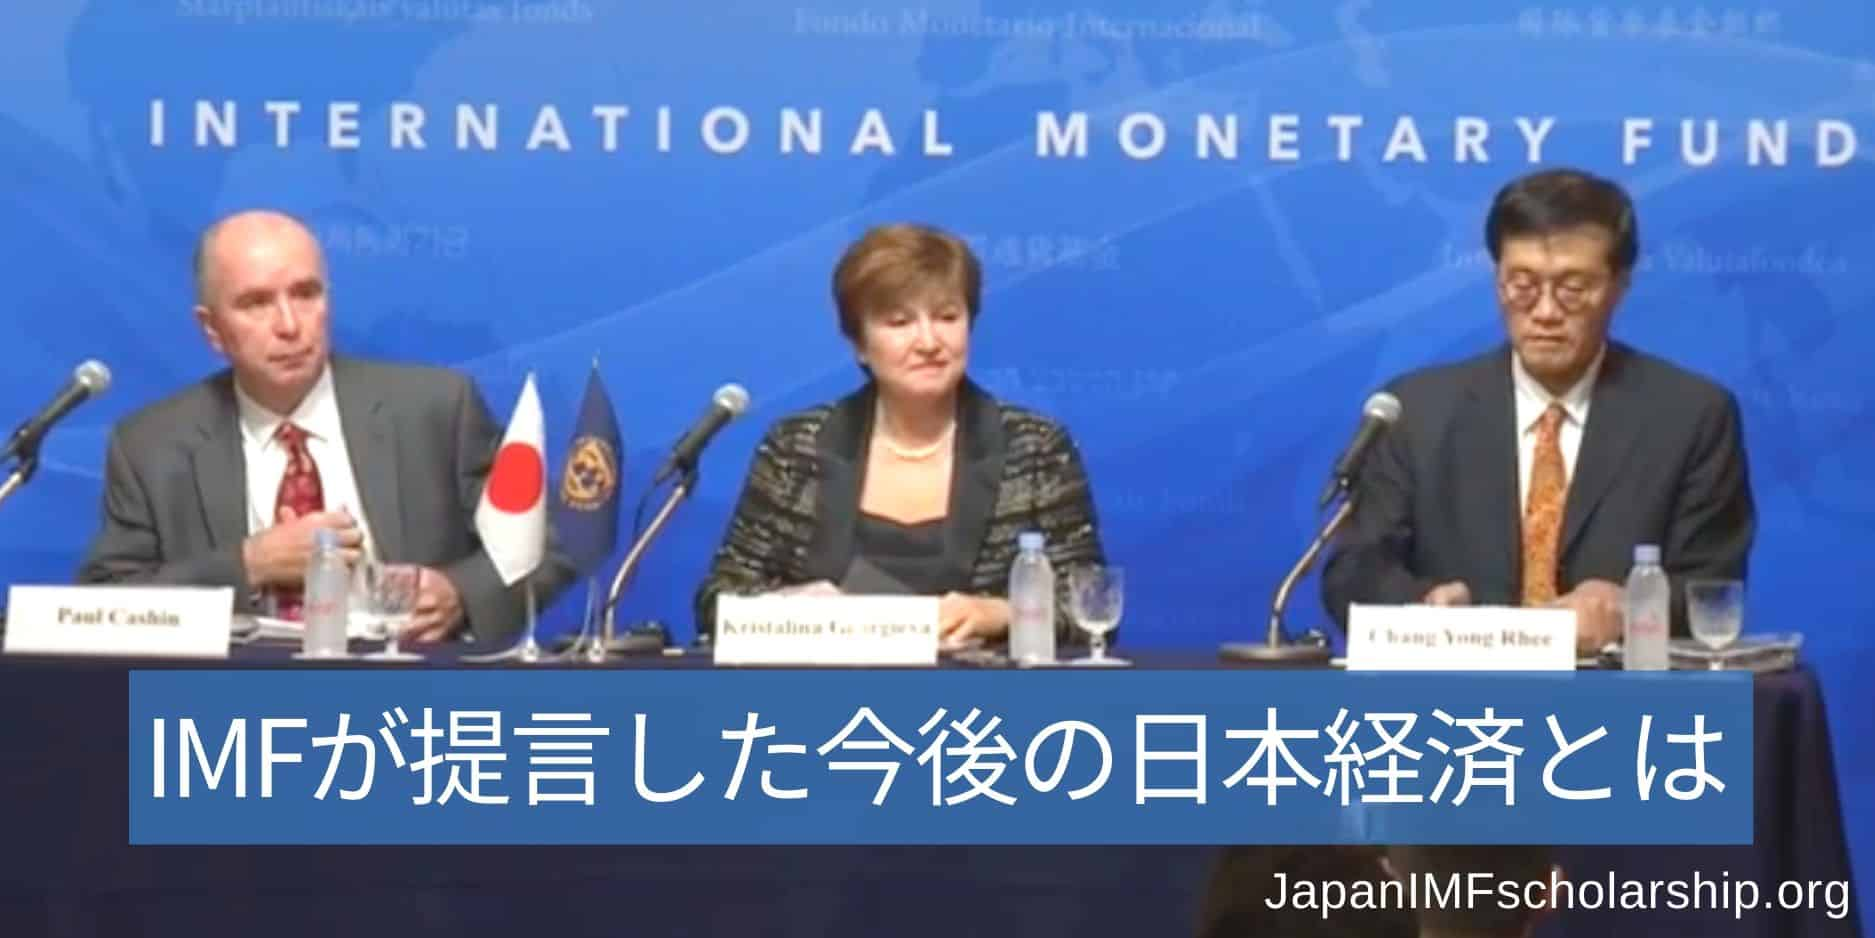 jisp web imf 2019 article 4 mission press conference in japan